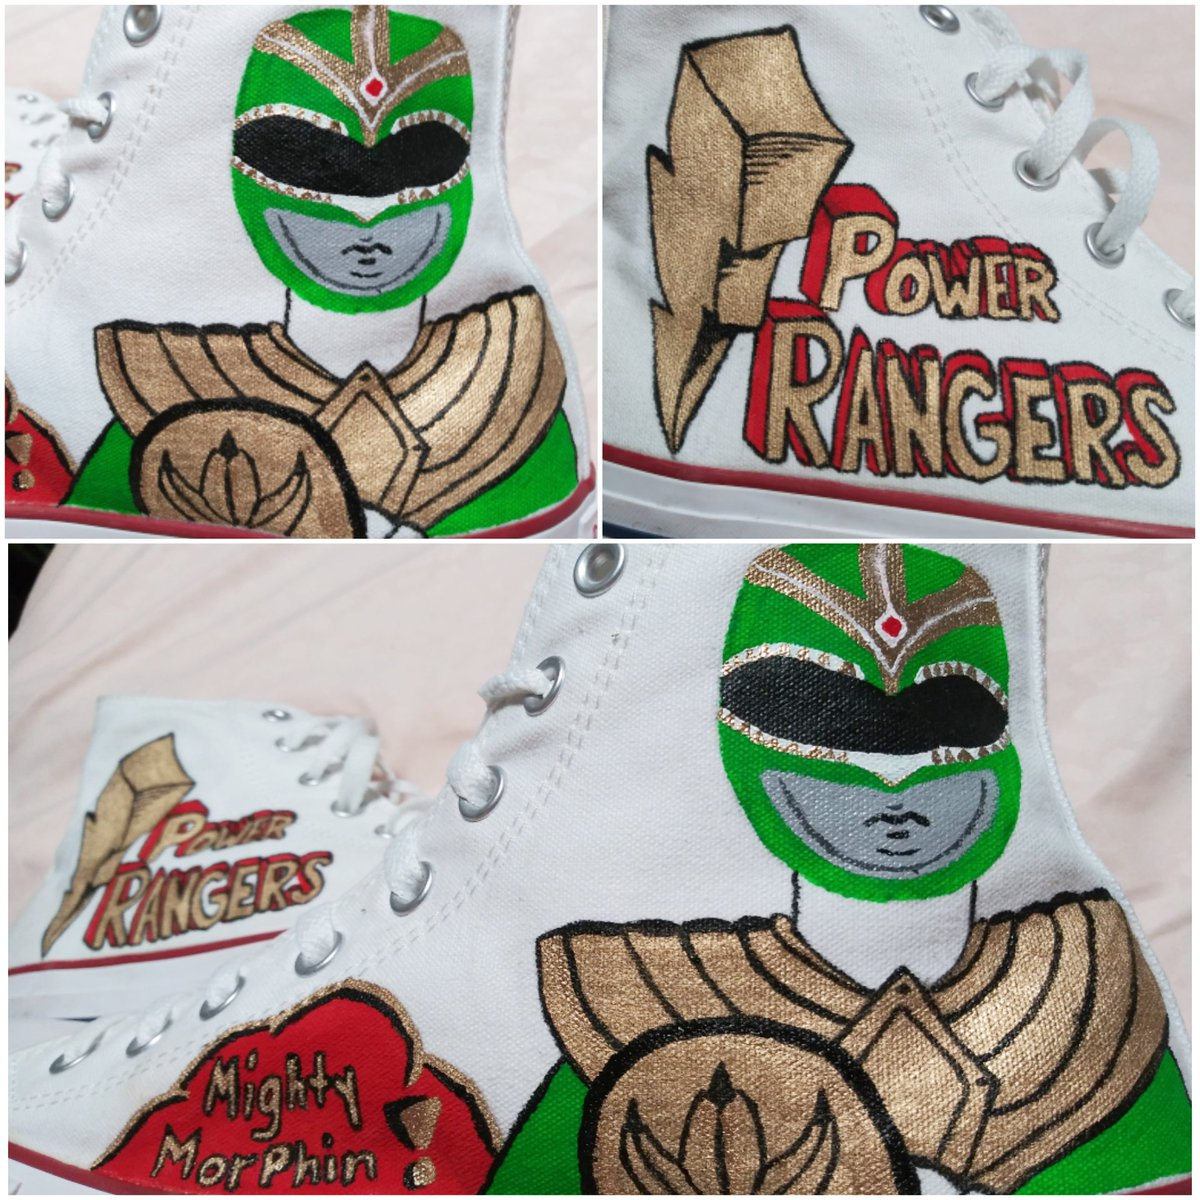 A lil something I do on my spare time....#converse #PowerRangerspic.twitter.com/fubtSnuMVN